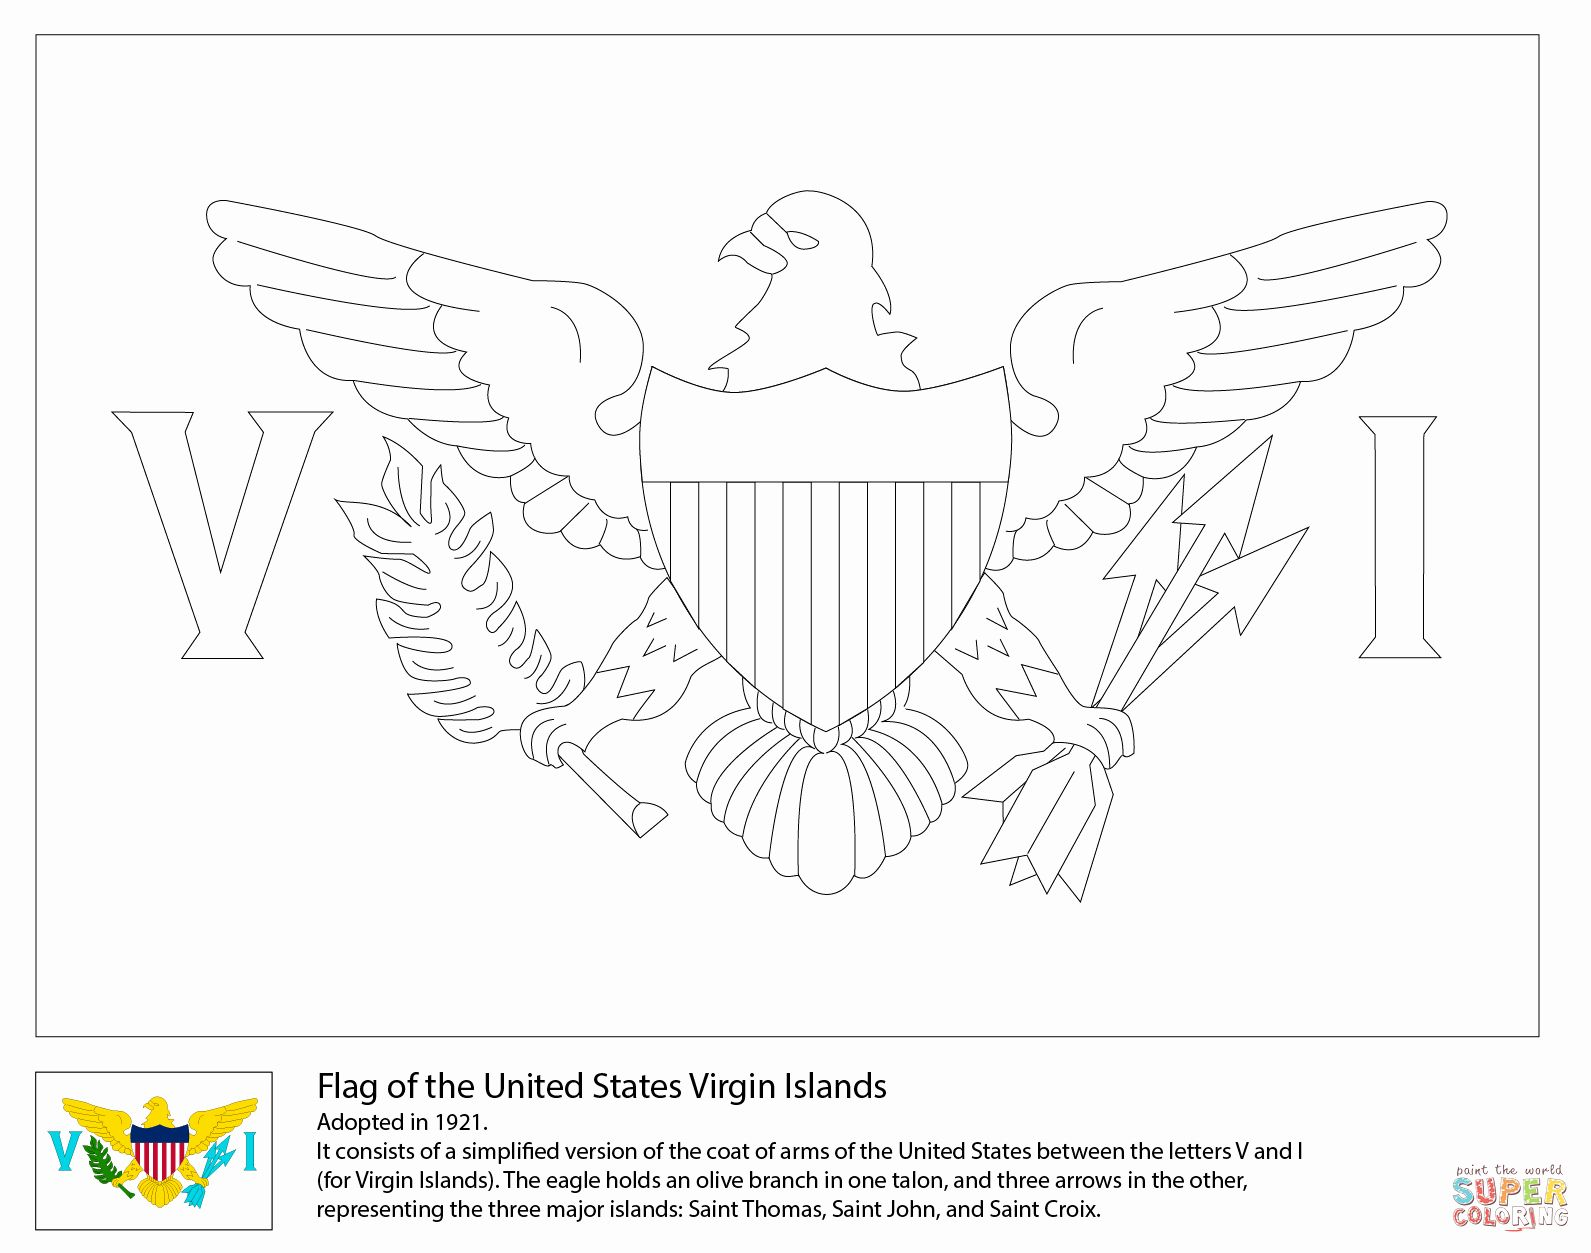 United States Coloring Page Luxury Flag Of The United States Virgin Islands Coloring Page In 2021 Coloring Pages United States Virgin Islands United States Flag